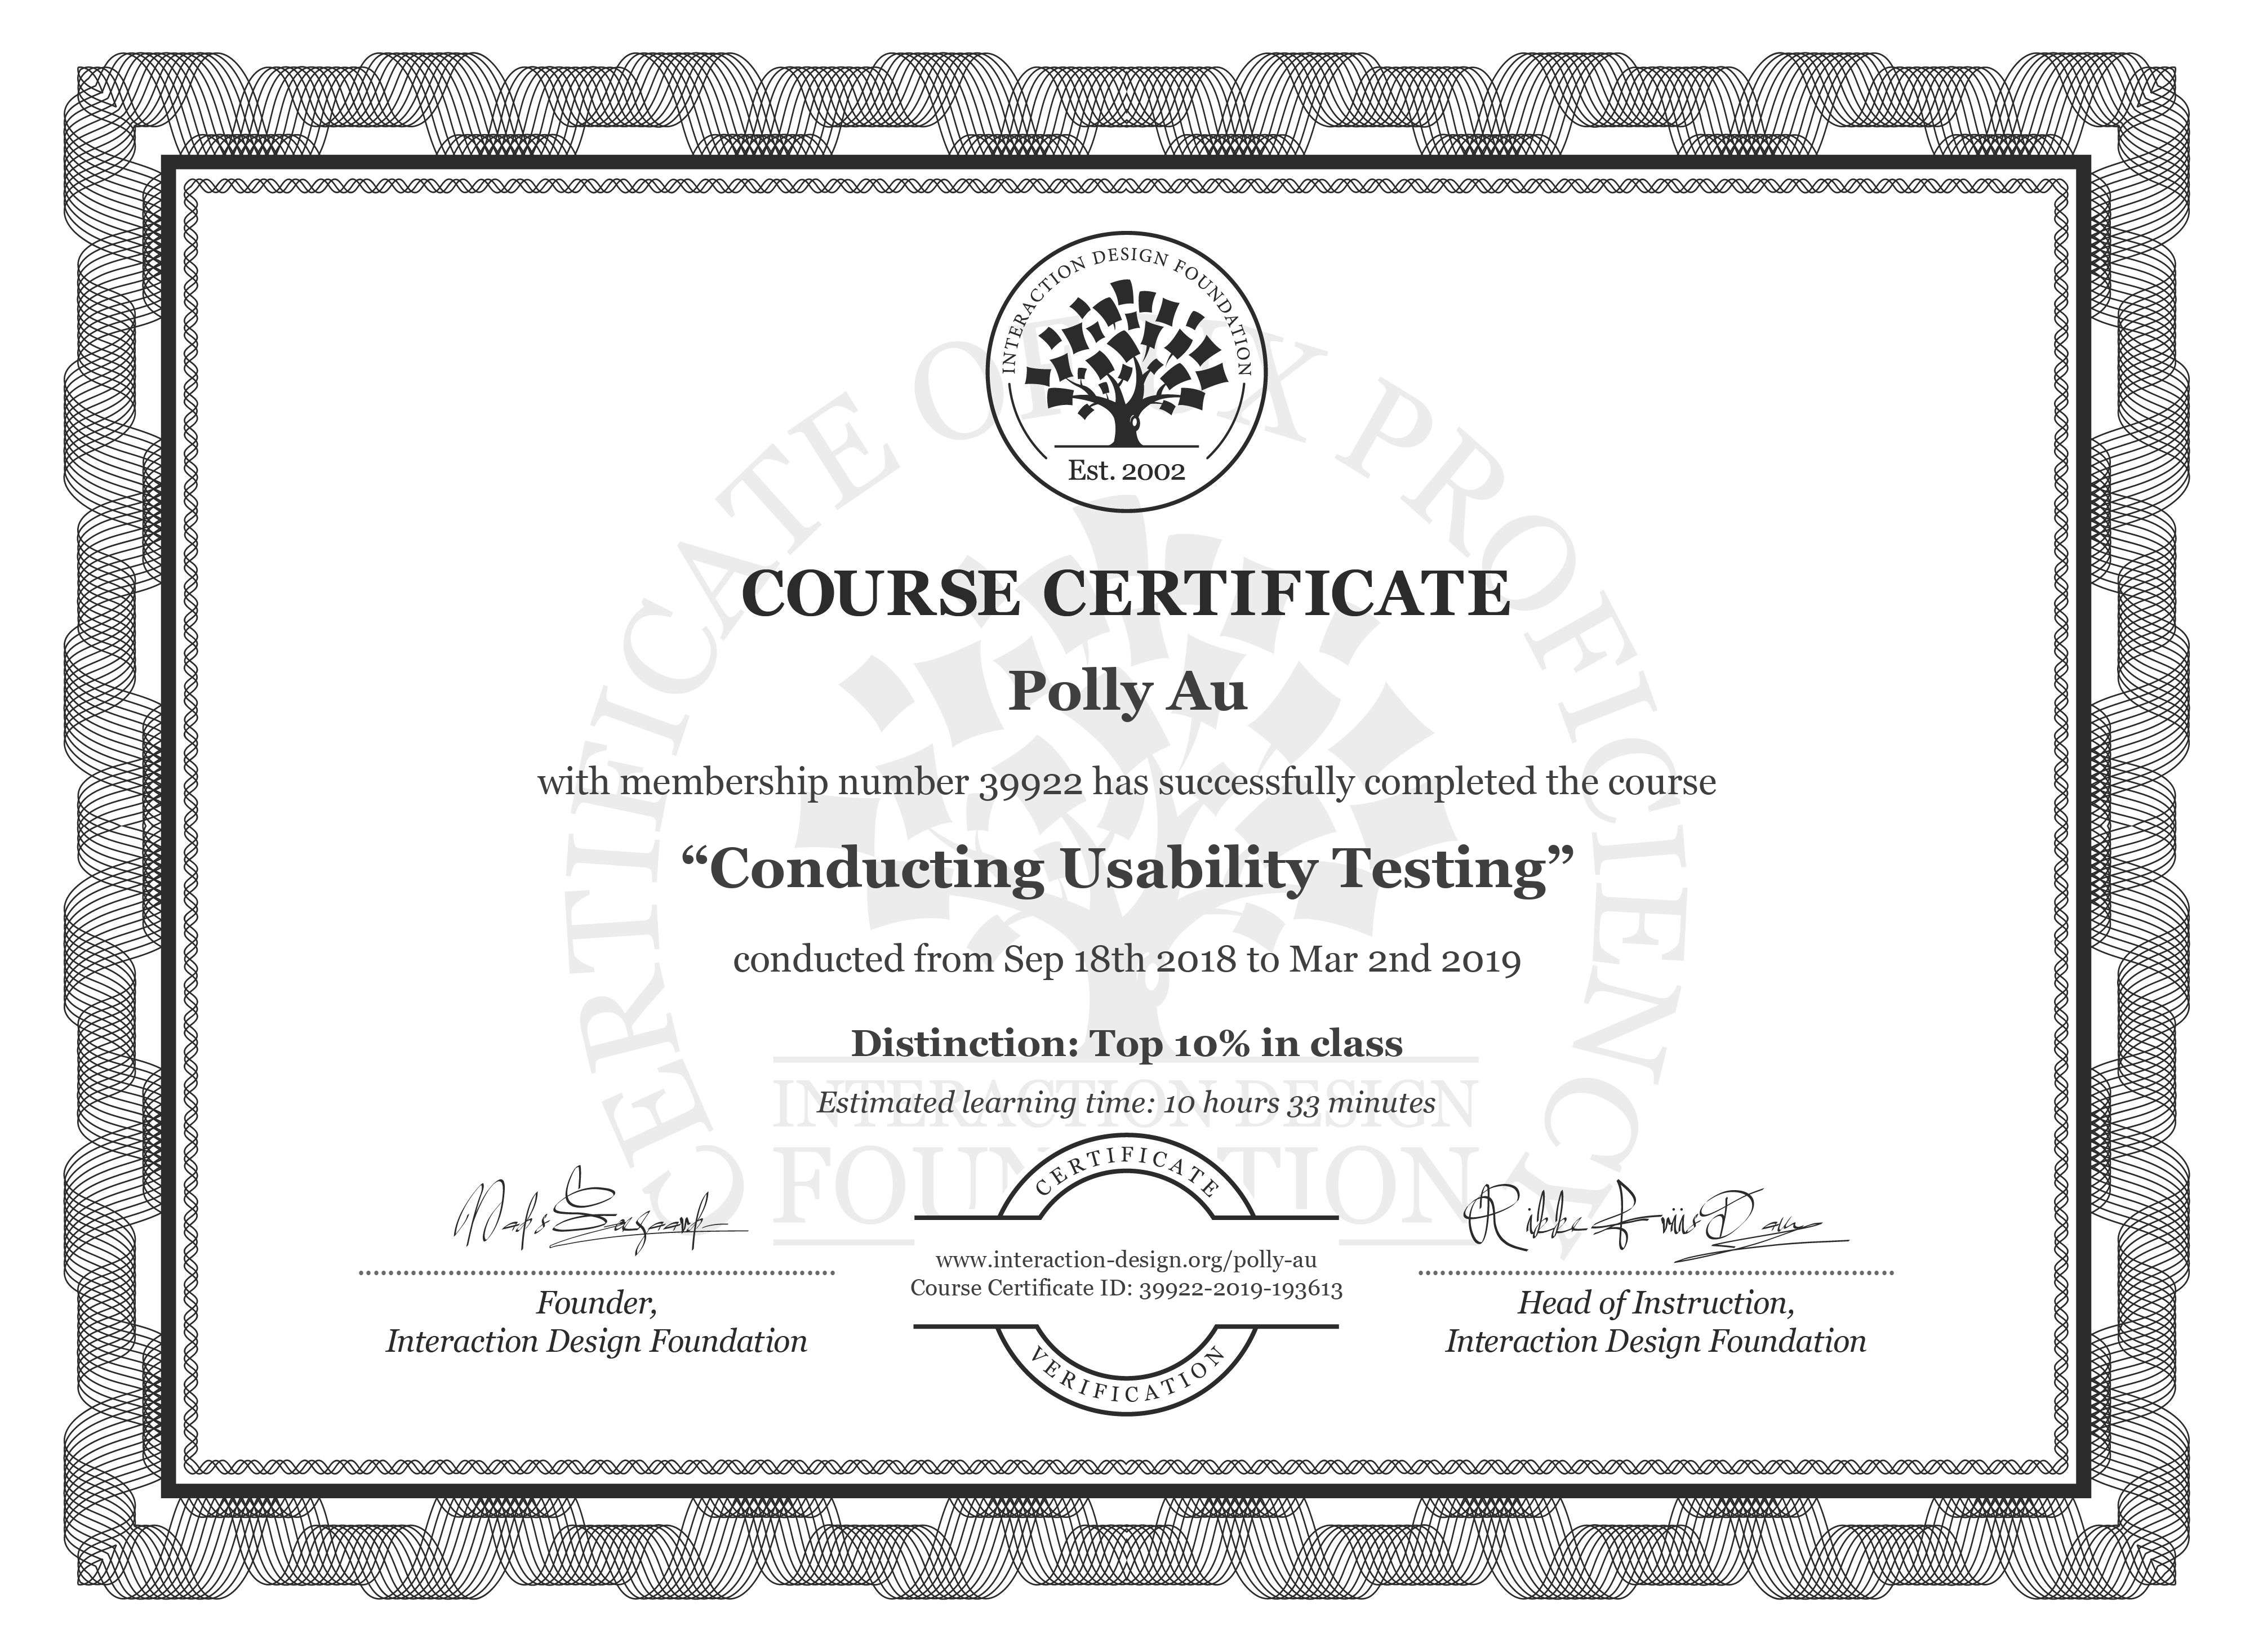 Polly Au's Course Certificate: Conducting Usability Testing